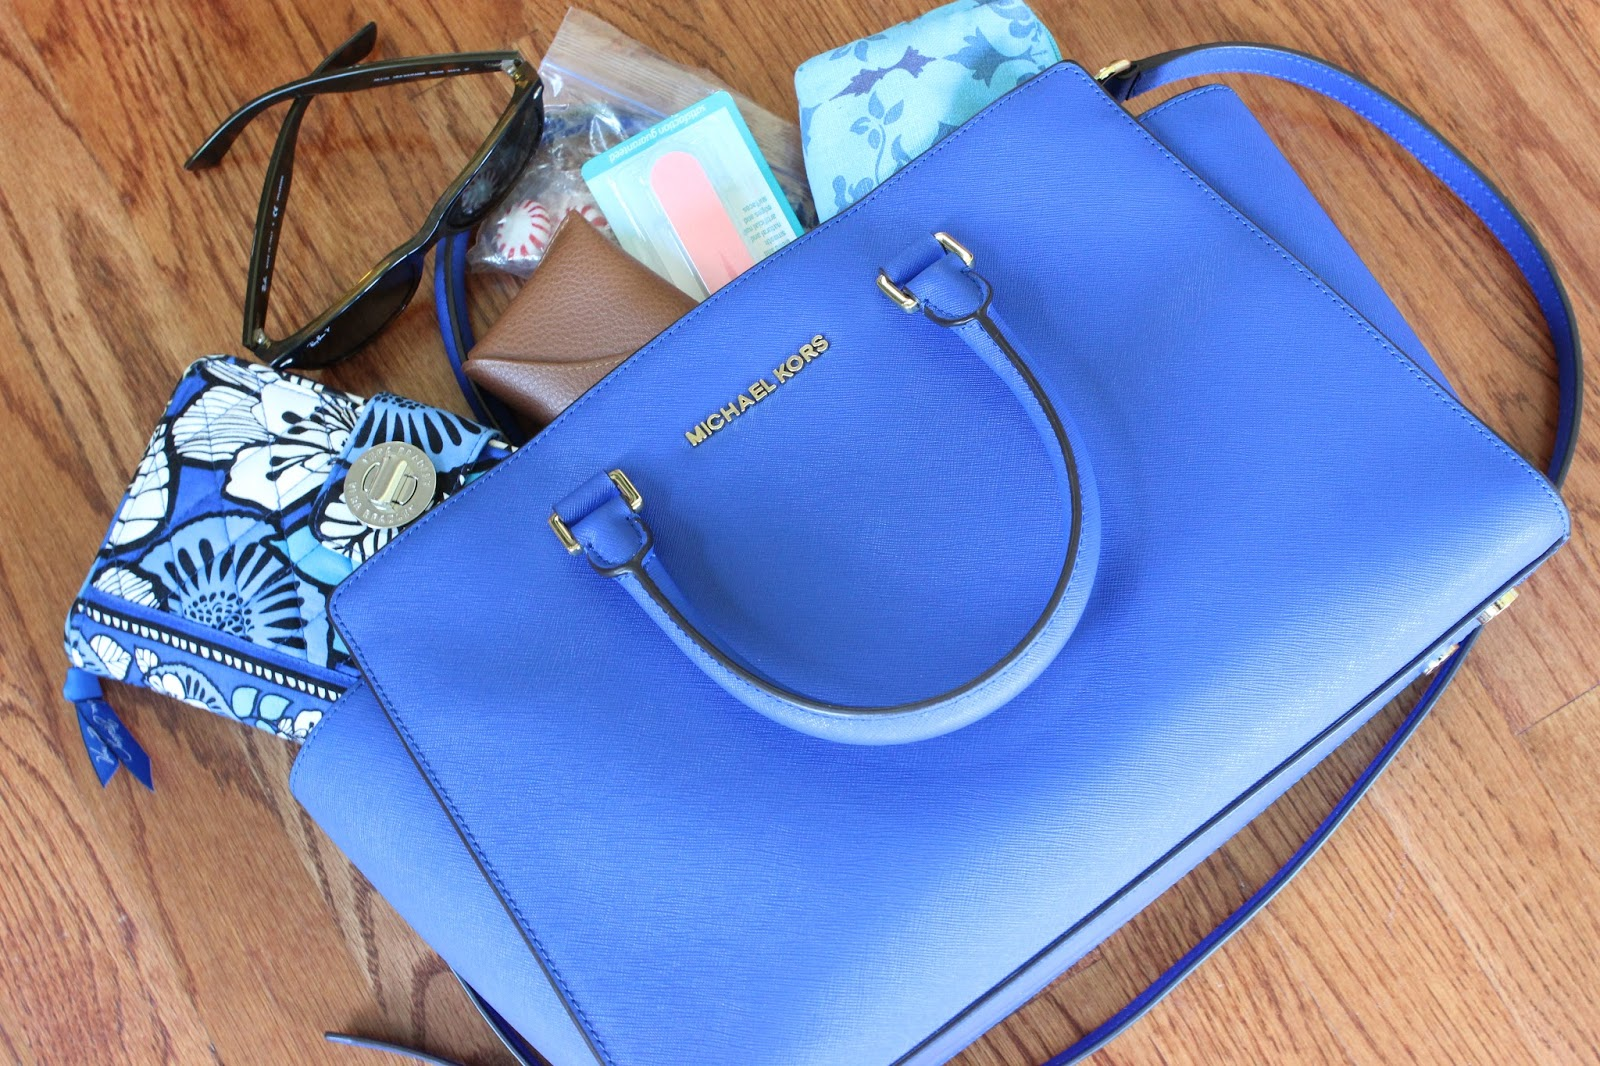 e6dbf964af6d1 What s In My Bag  Michael Kors Large Selma